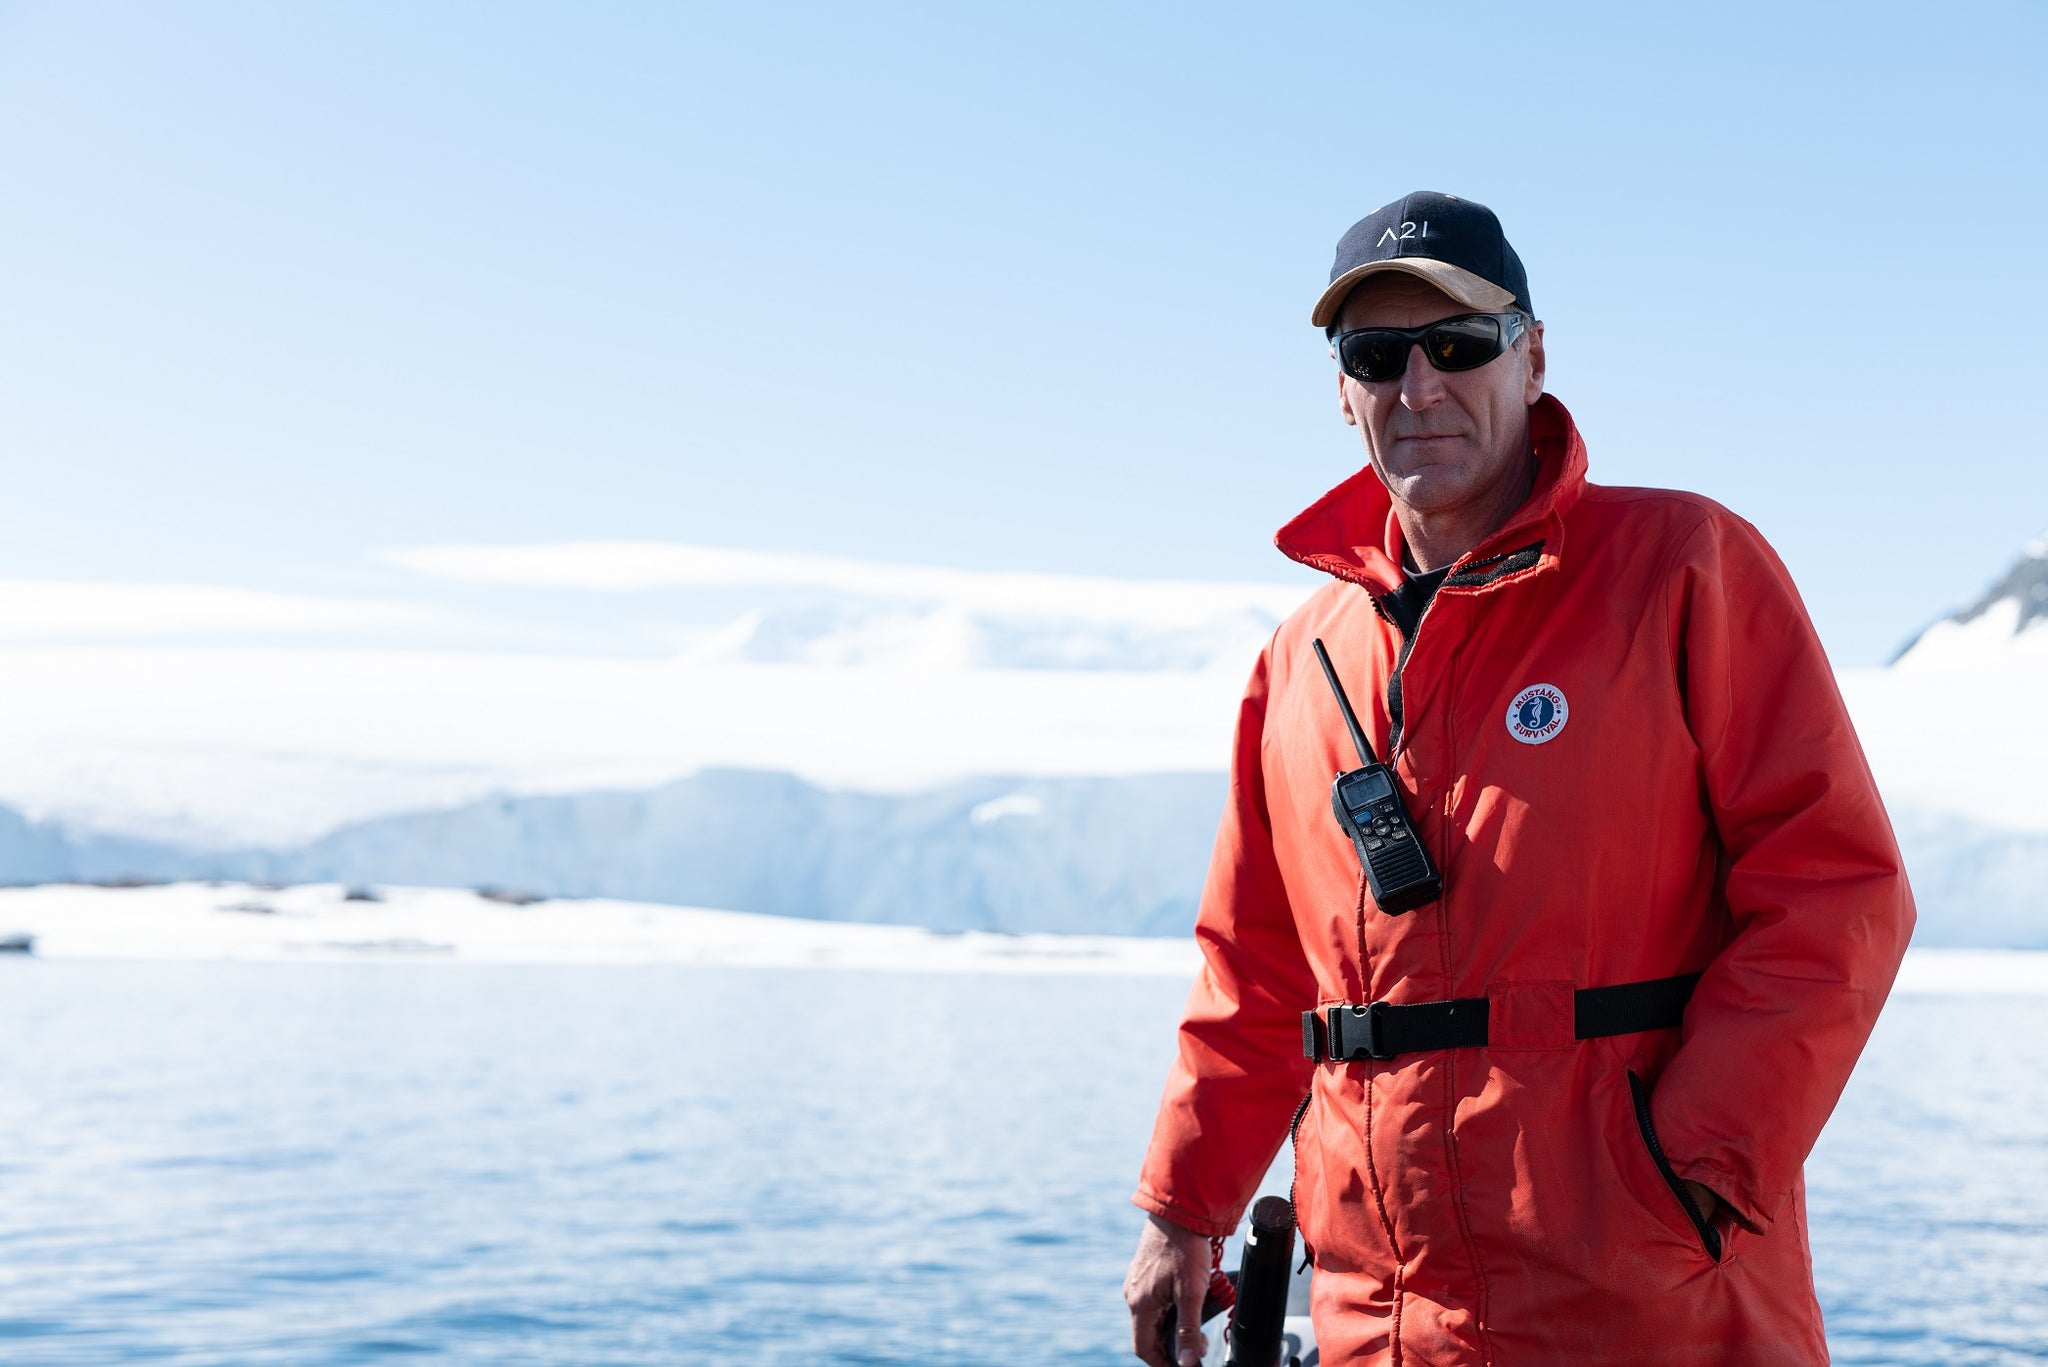 Antarctic Guide Snowy, rocking his orange Mustang Survival Float coat, basball cap, no gloves